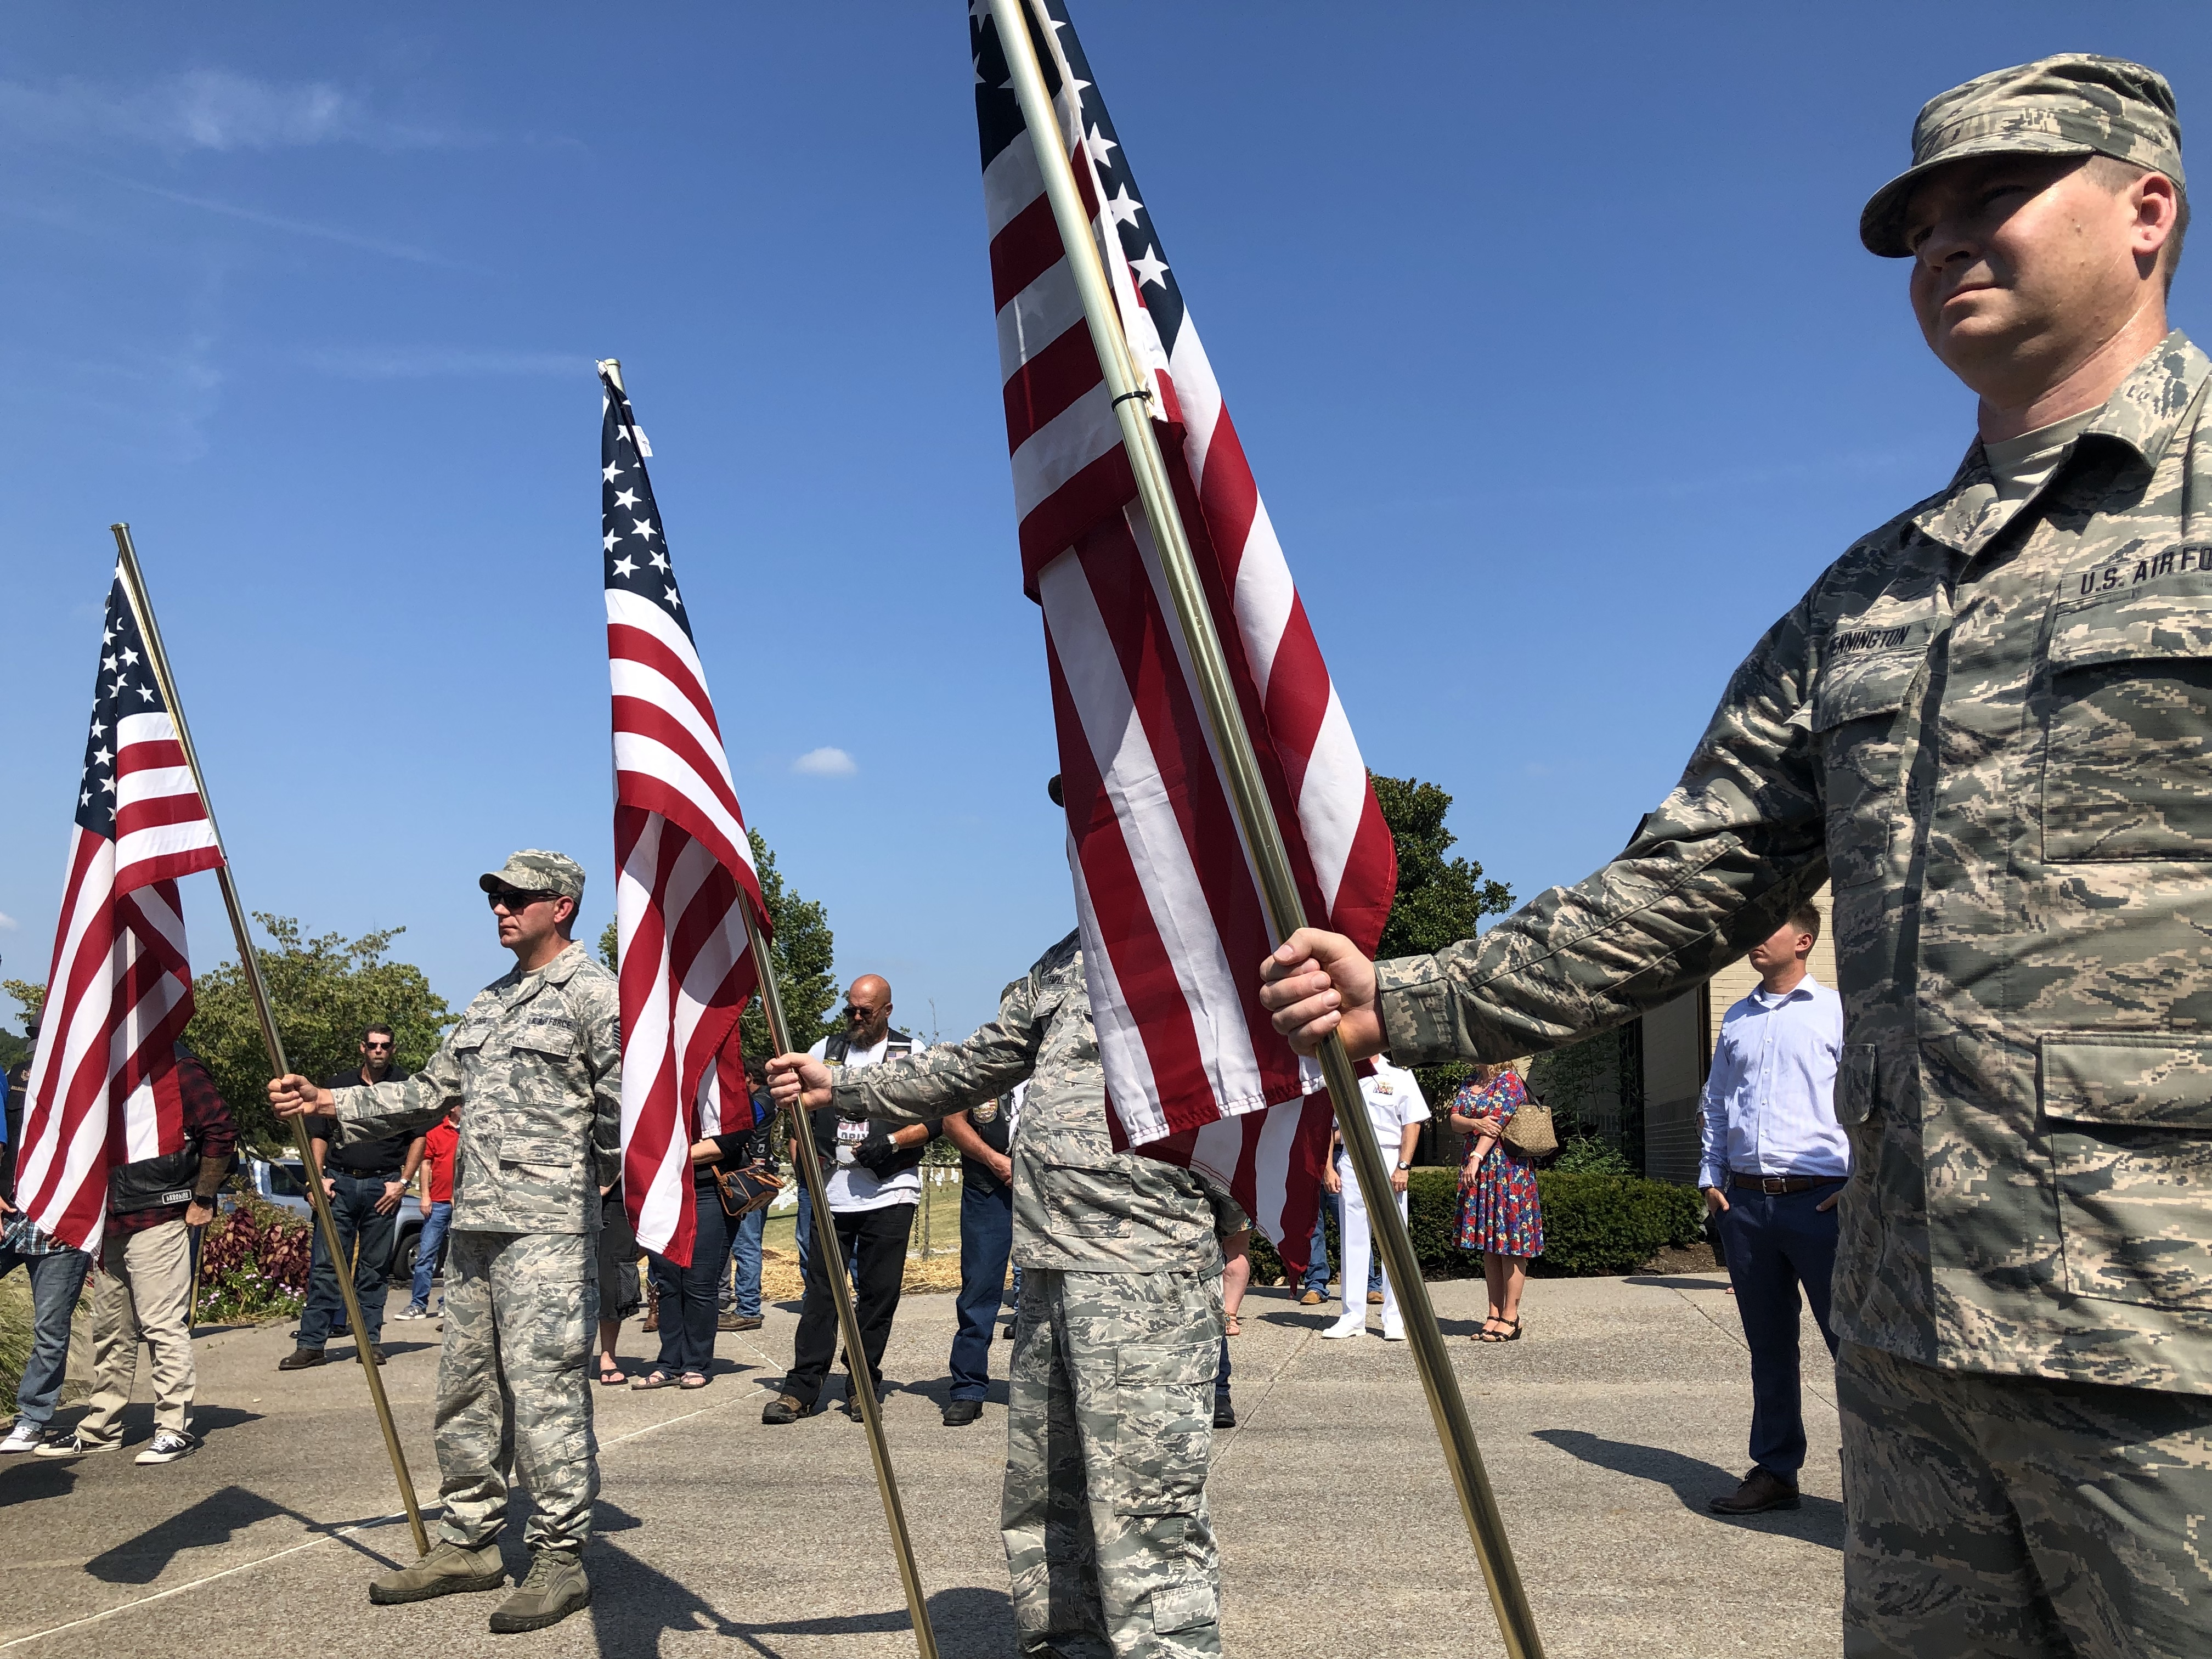 Strangers pack funeral for veteran with no known family, friends: 'He will not be alone'